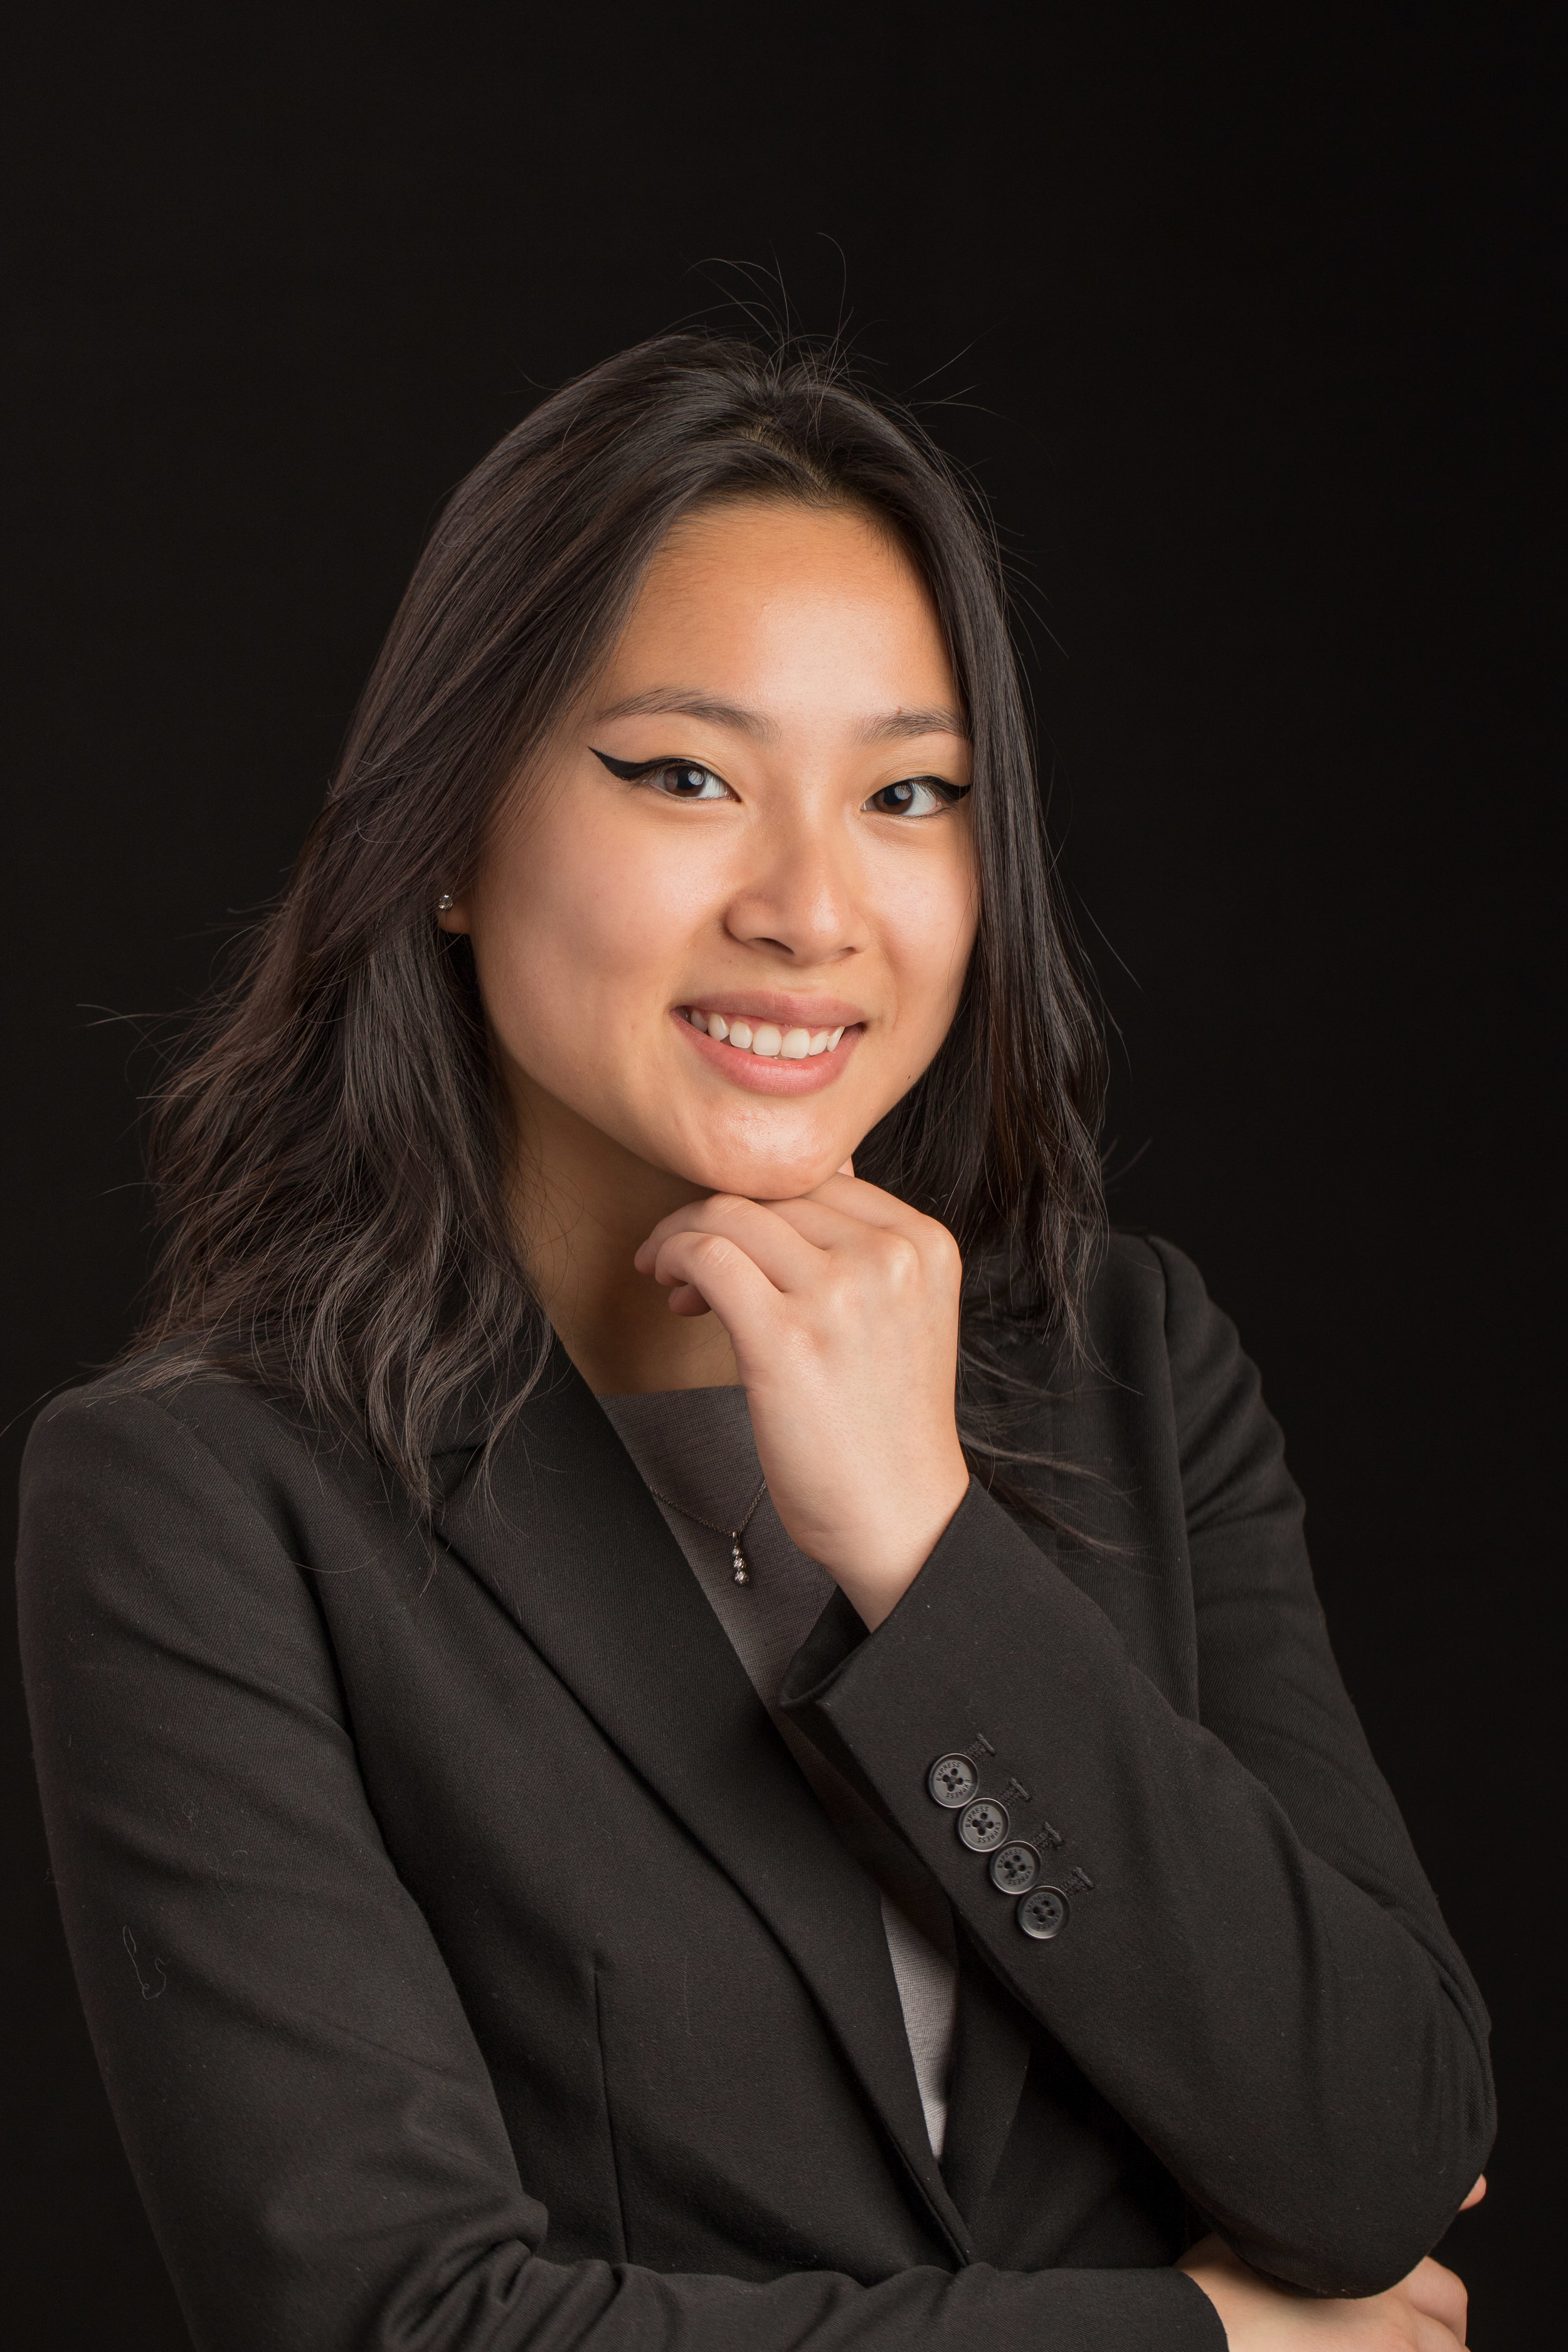 Cecilia Guan - NYC Operations Manager